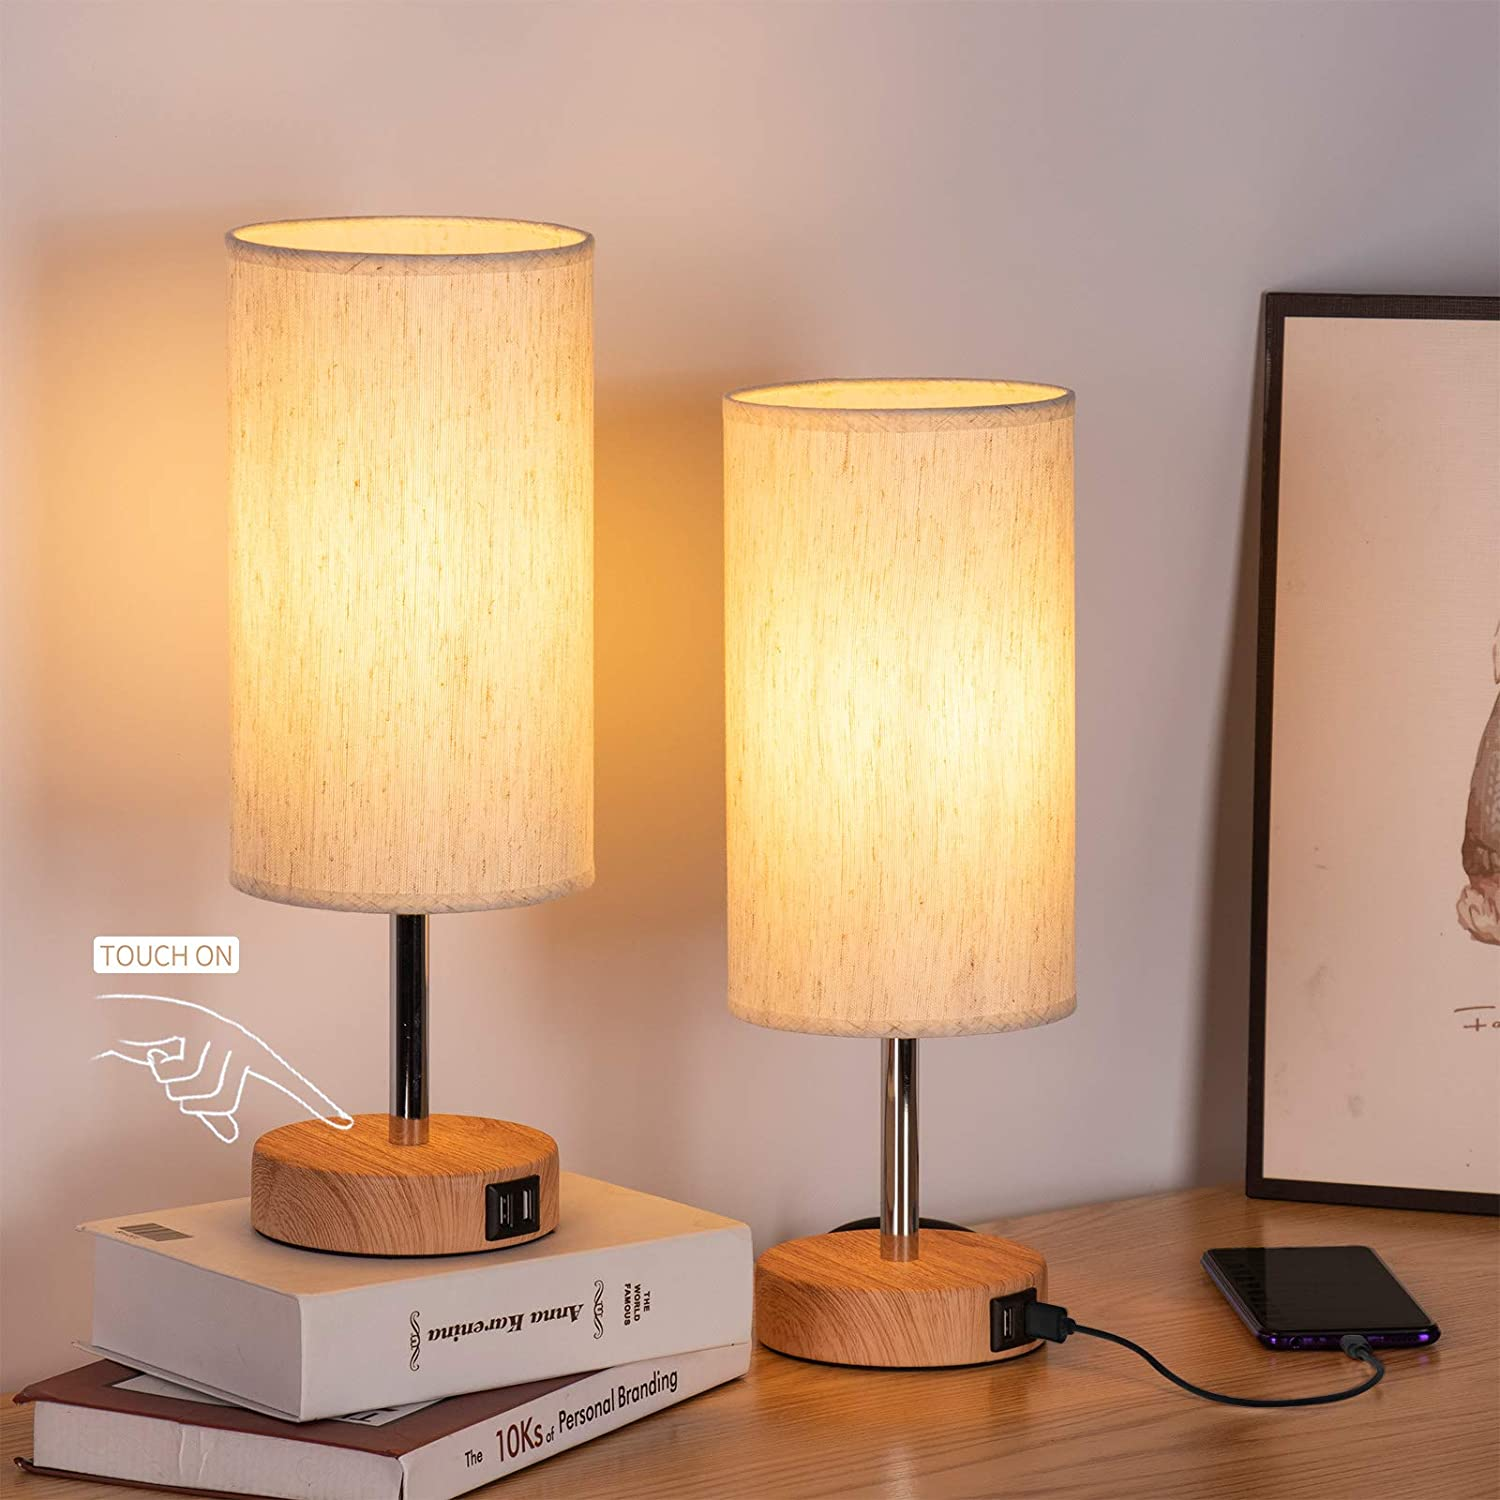 Bedside Lamps with USB Port - Touch Bedro Lamp for Overseas parallel import regular item Table Store Control